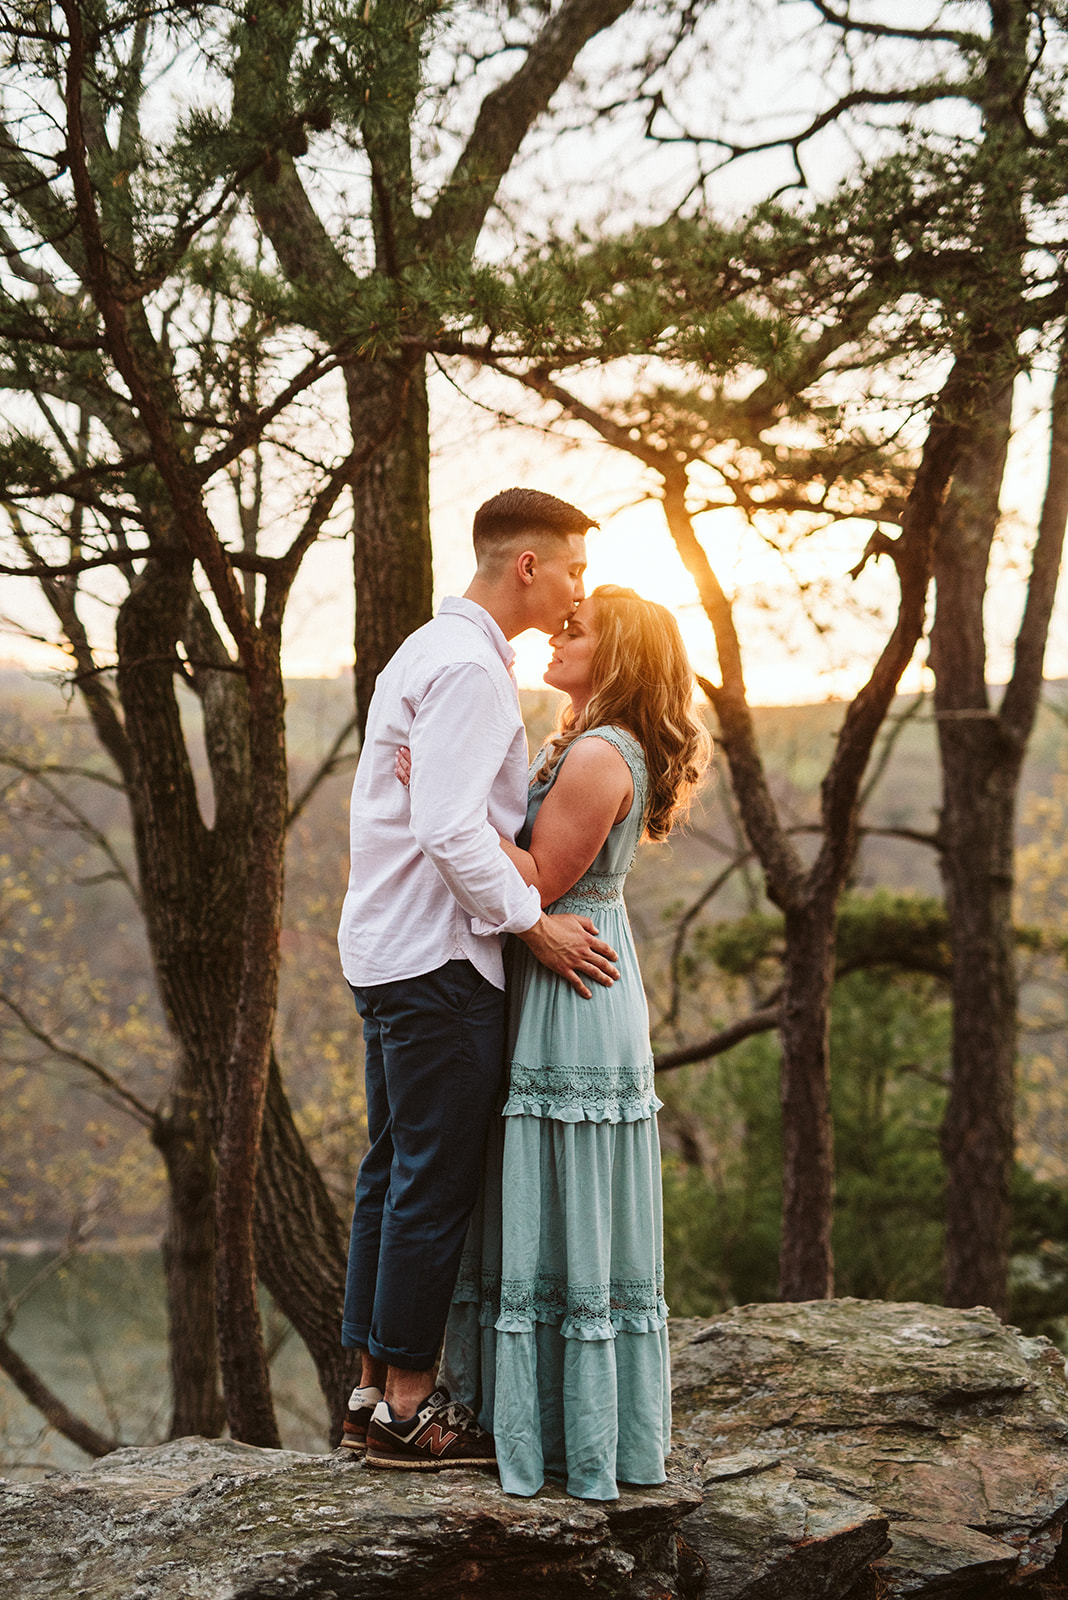 Adventurous engagement session at Pinnacle Overlook in Holtwood Pennsylvania